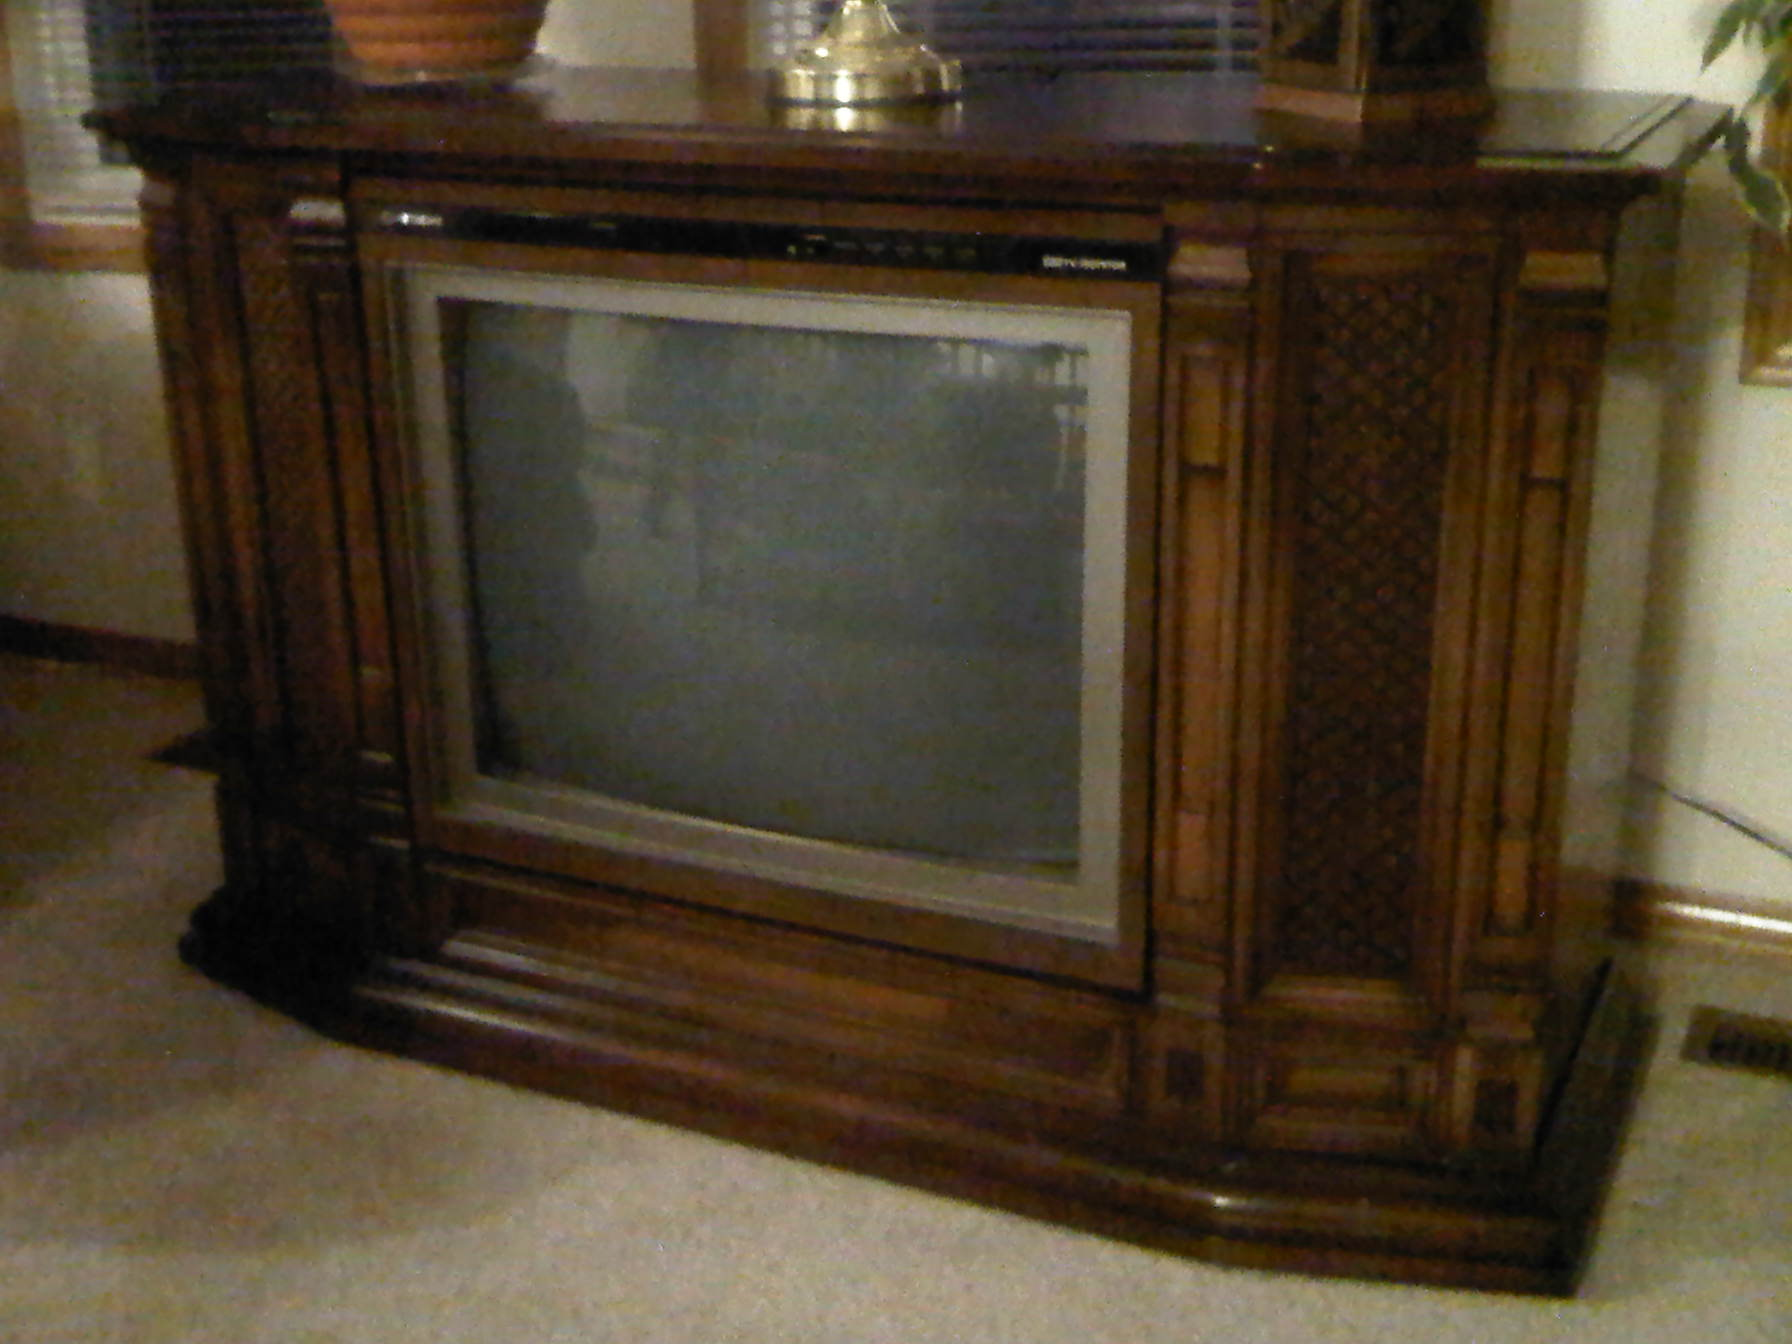 Greatest Old Wooden Tv Console At Oy53 Roccommunity